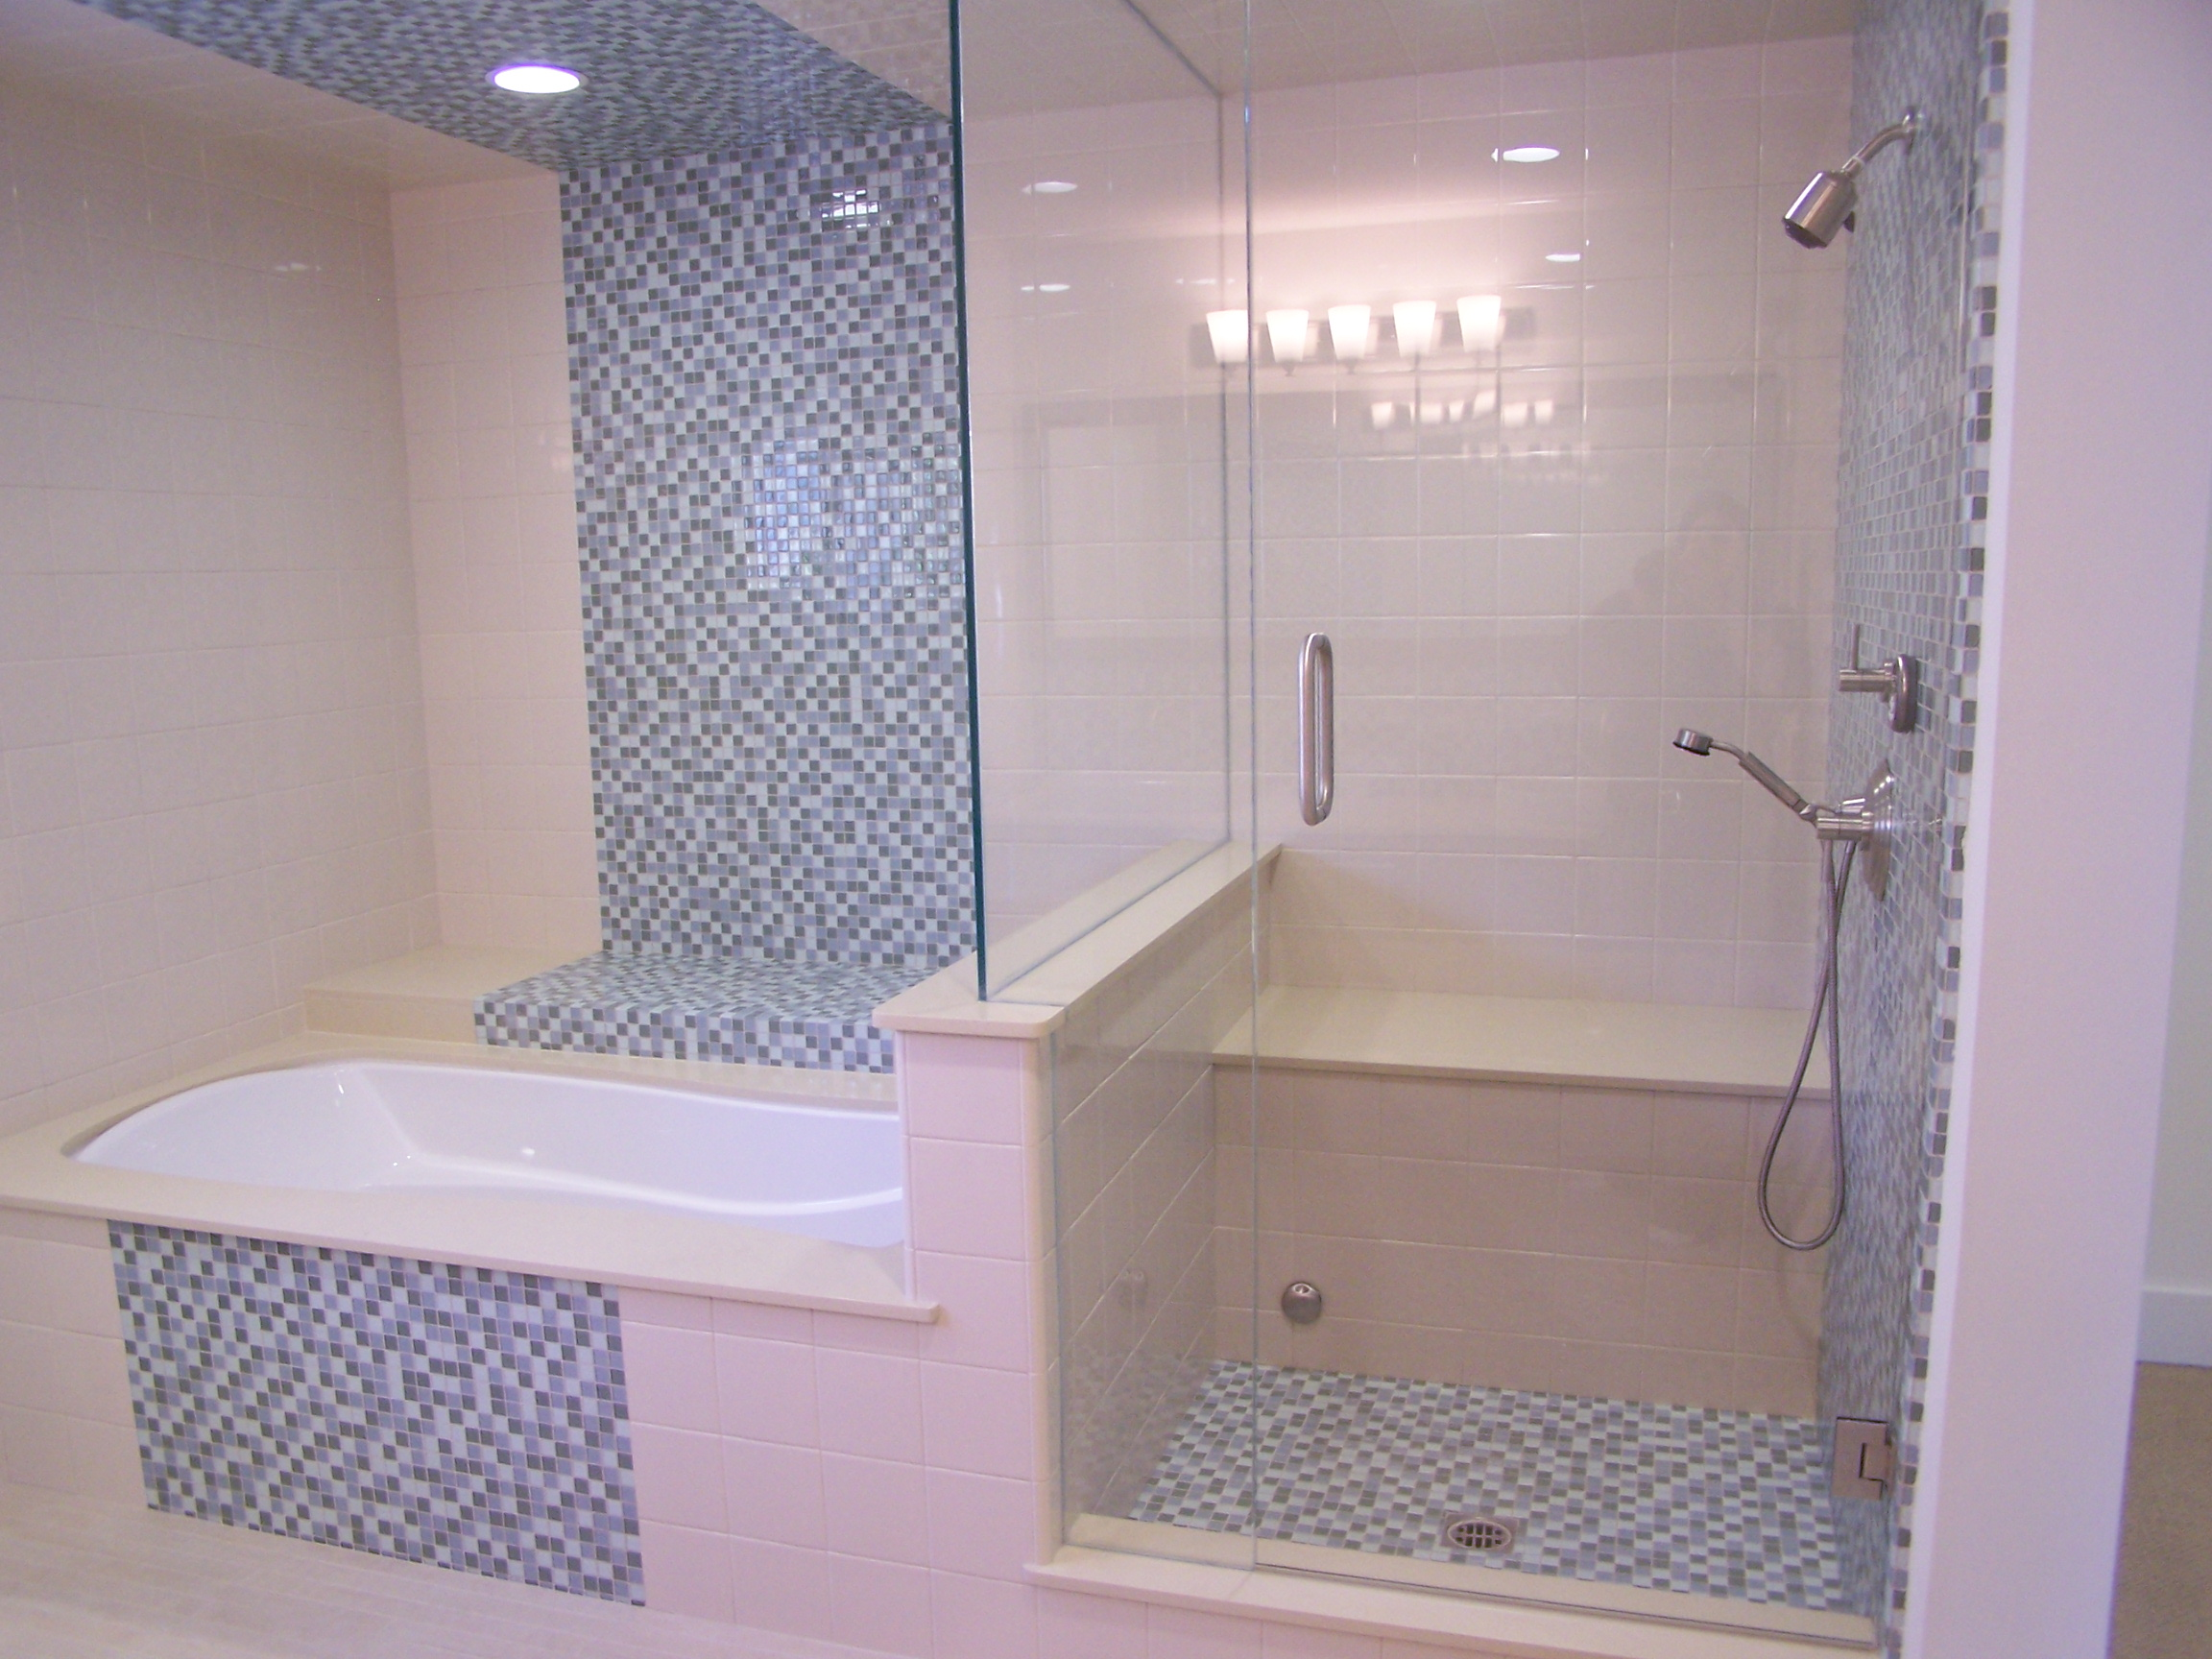 Free Download Bathroom Wall Tiles Design Great Home Interior Cute Pink Bathroom Wall 2304x1728 For Your Desktop Mobile Tablet Explore 48 Wallpaper For Bathrooms Walls Vinyl Wallpaper For Bathrooms